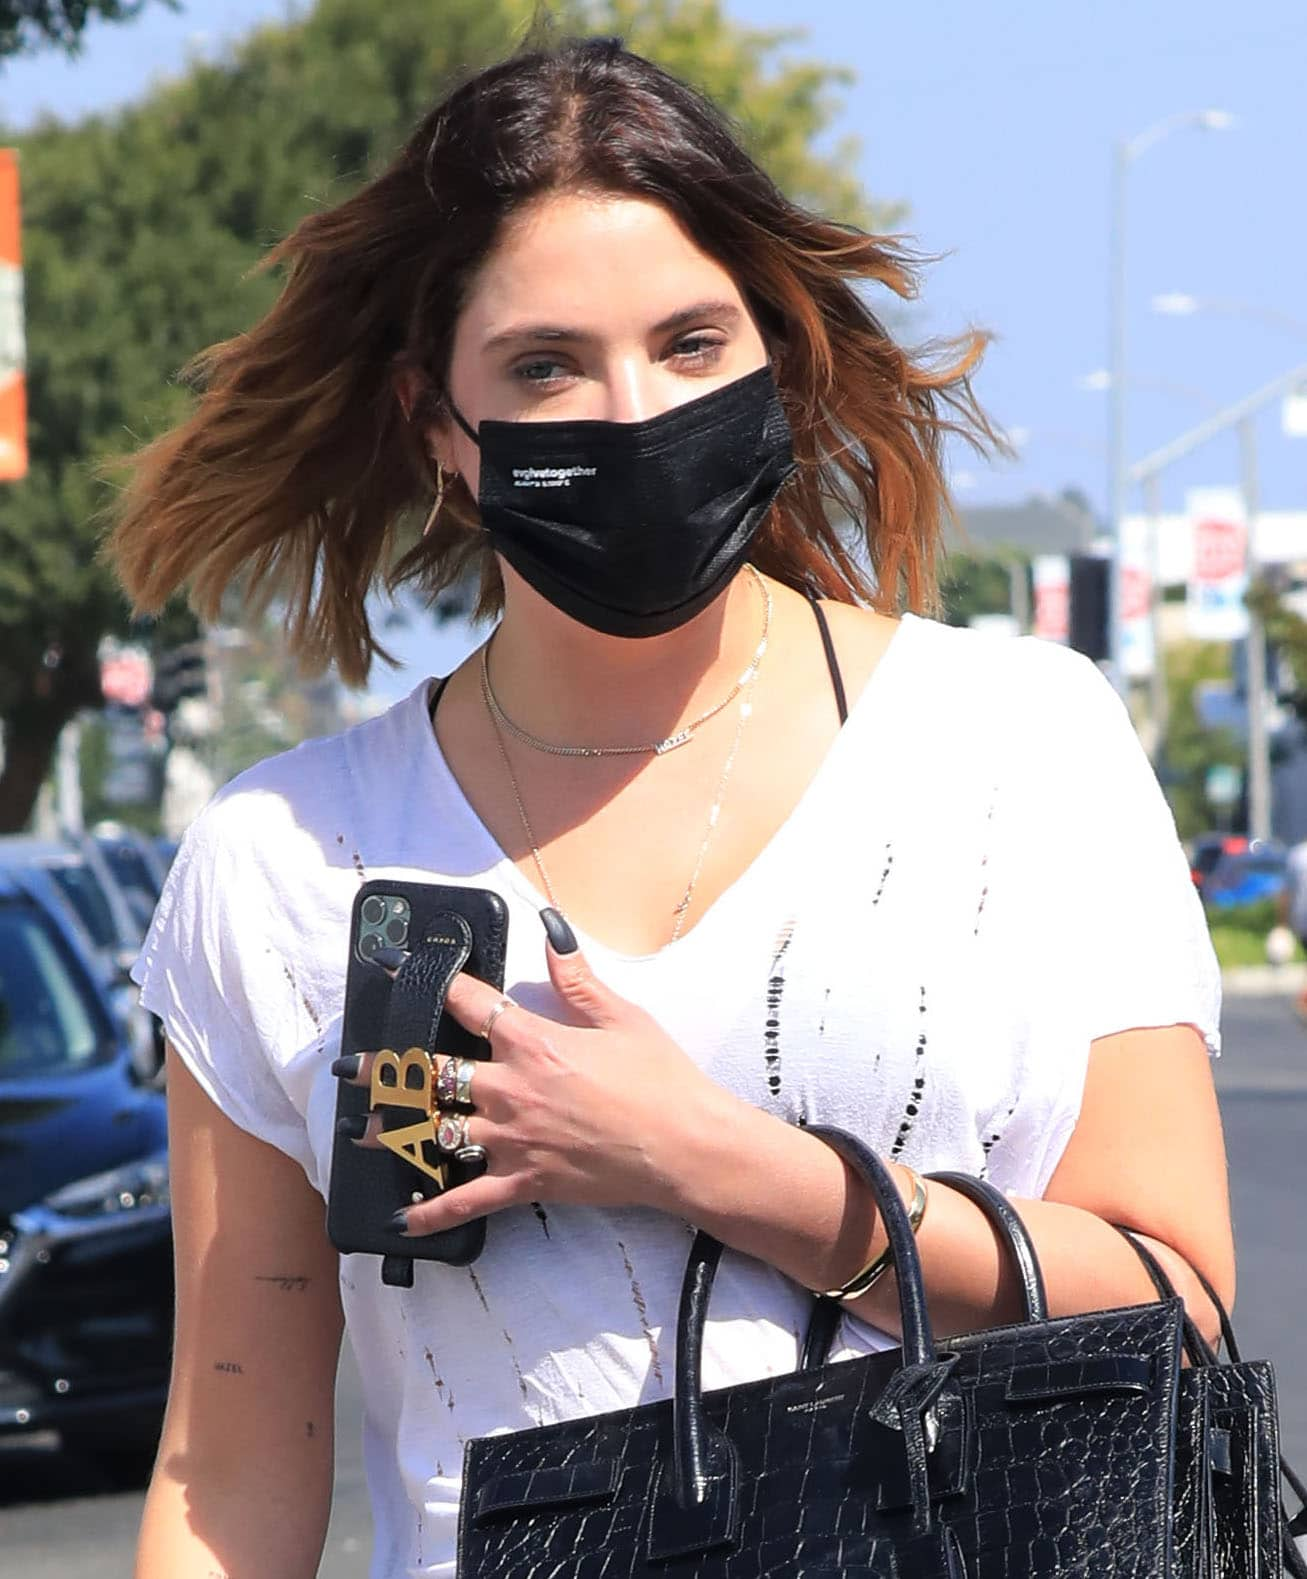 Ashley Benson wears barely-there makeup look with a black EvolveTogether face mask for protection